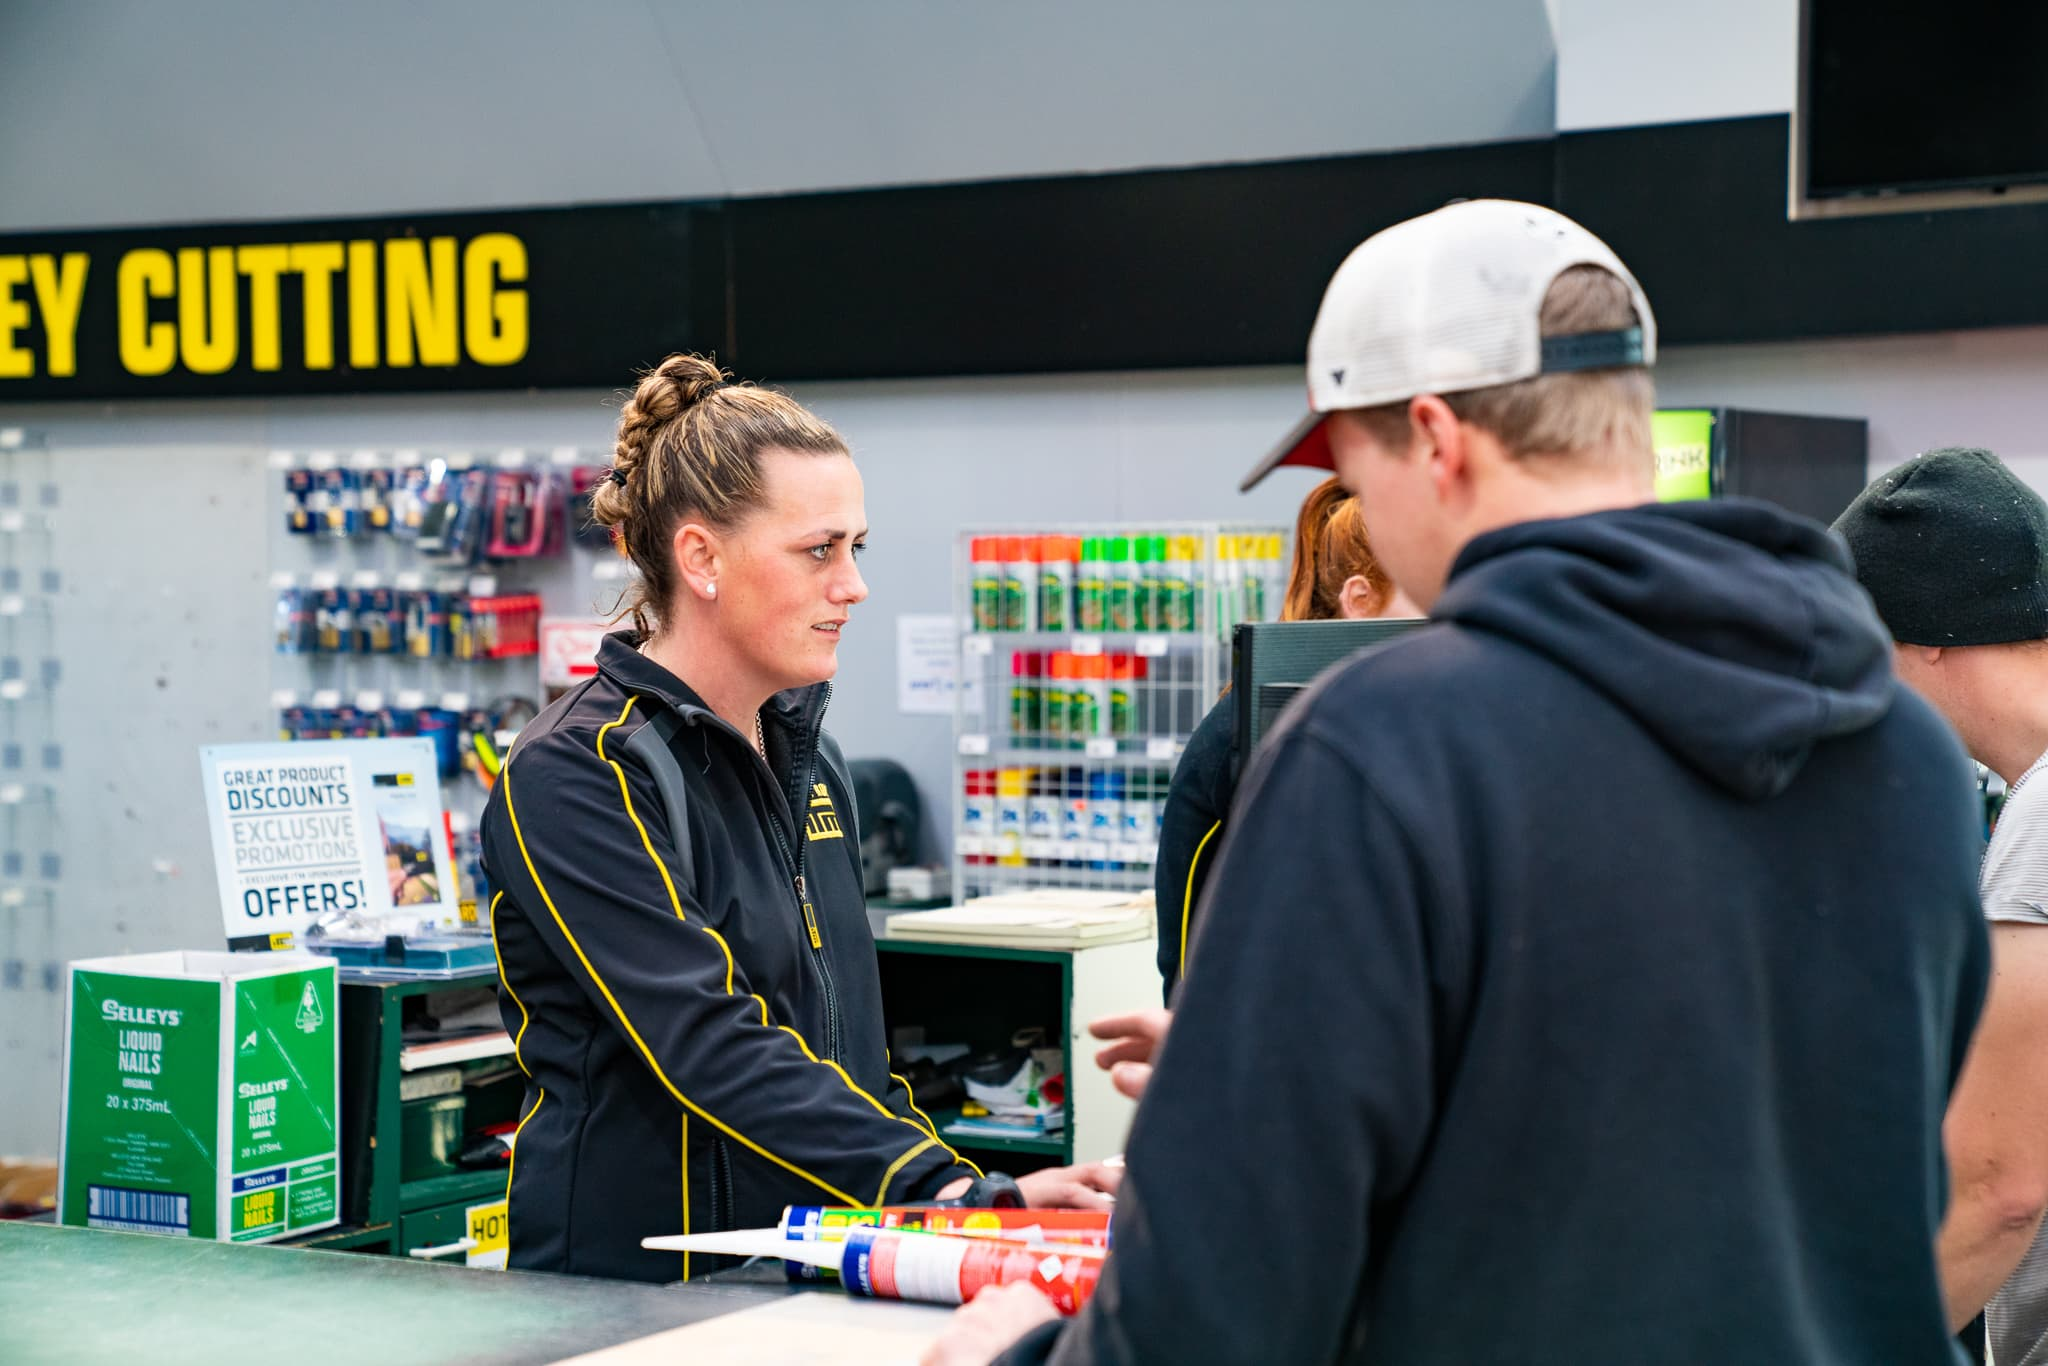 The team at Dyers Road ITM are friendly and happy to help you with your Trade & DIY questions